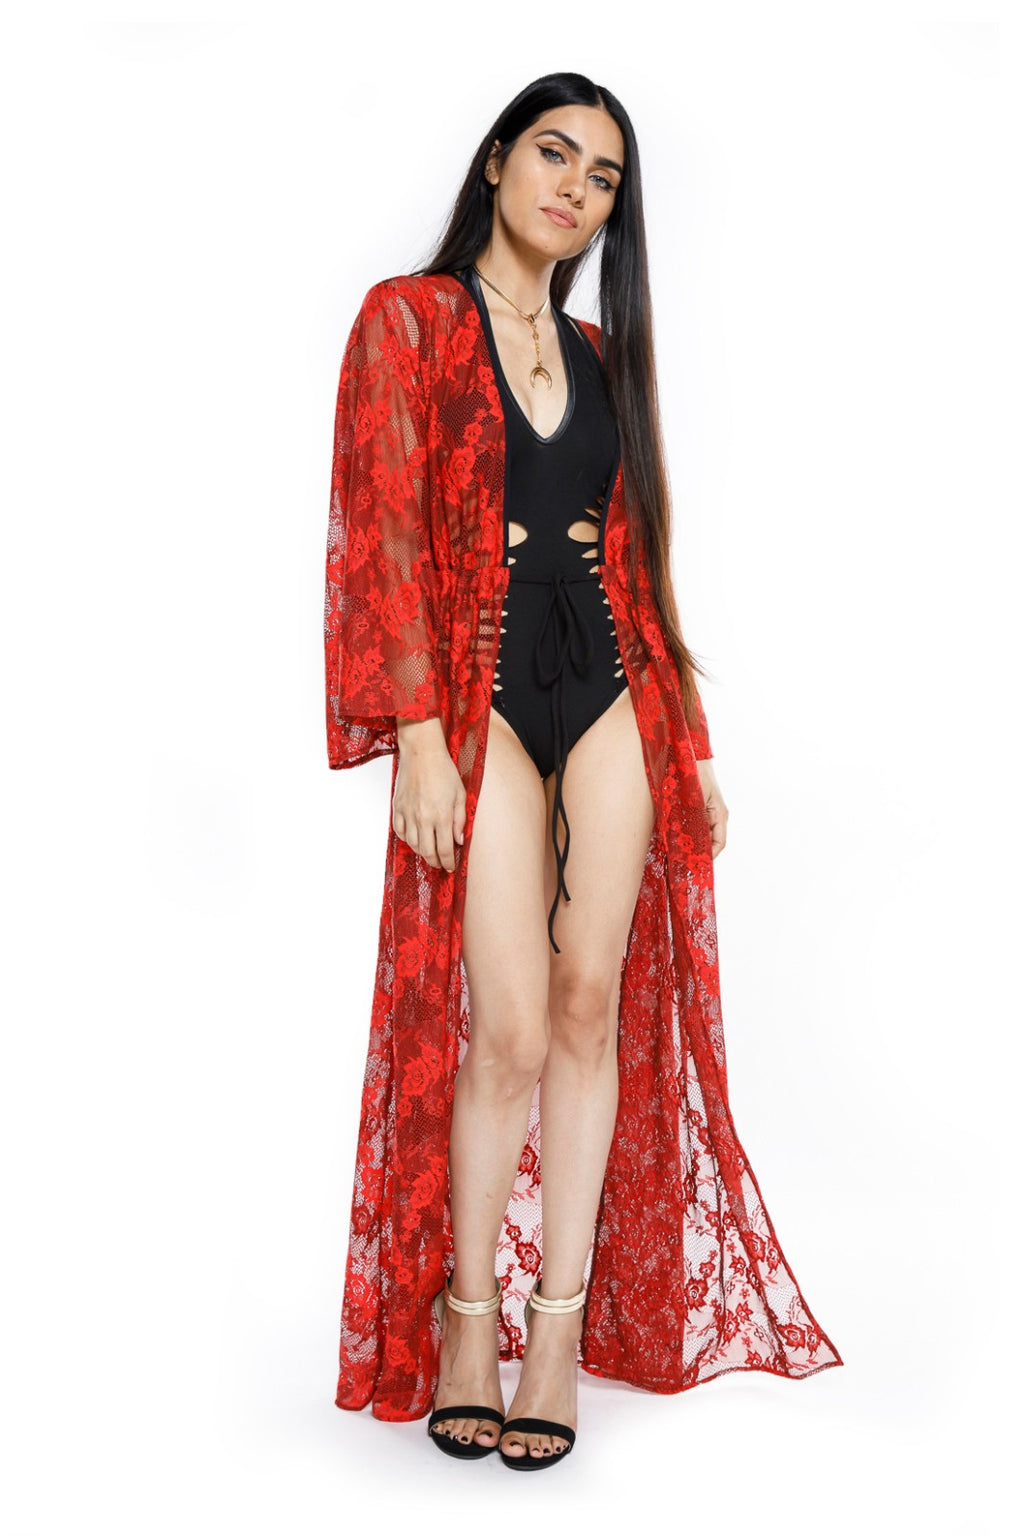 Red Lace Gemini Leisure Robe